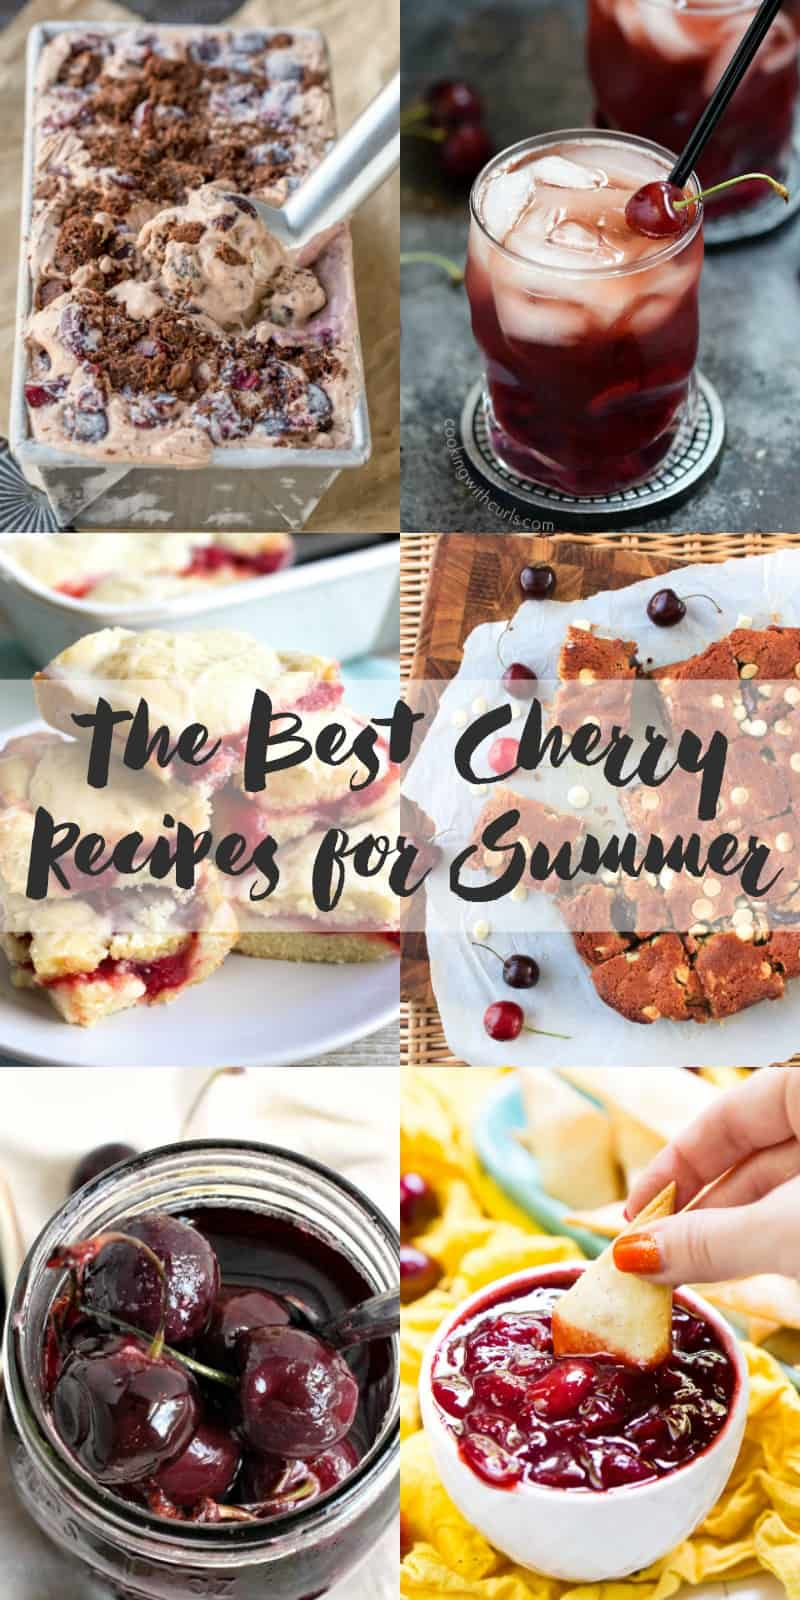 The Best Cherry Recipes for Summer! cookingwithcurls.com